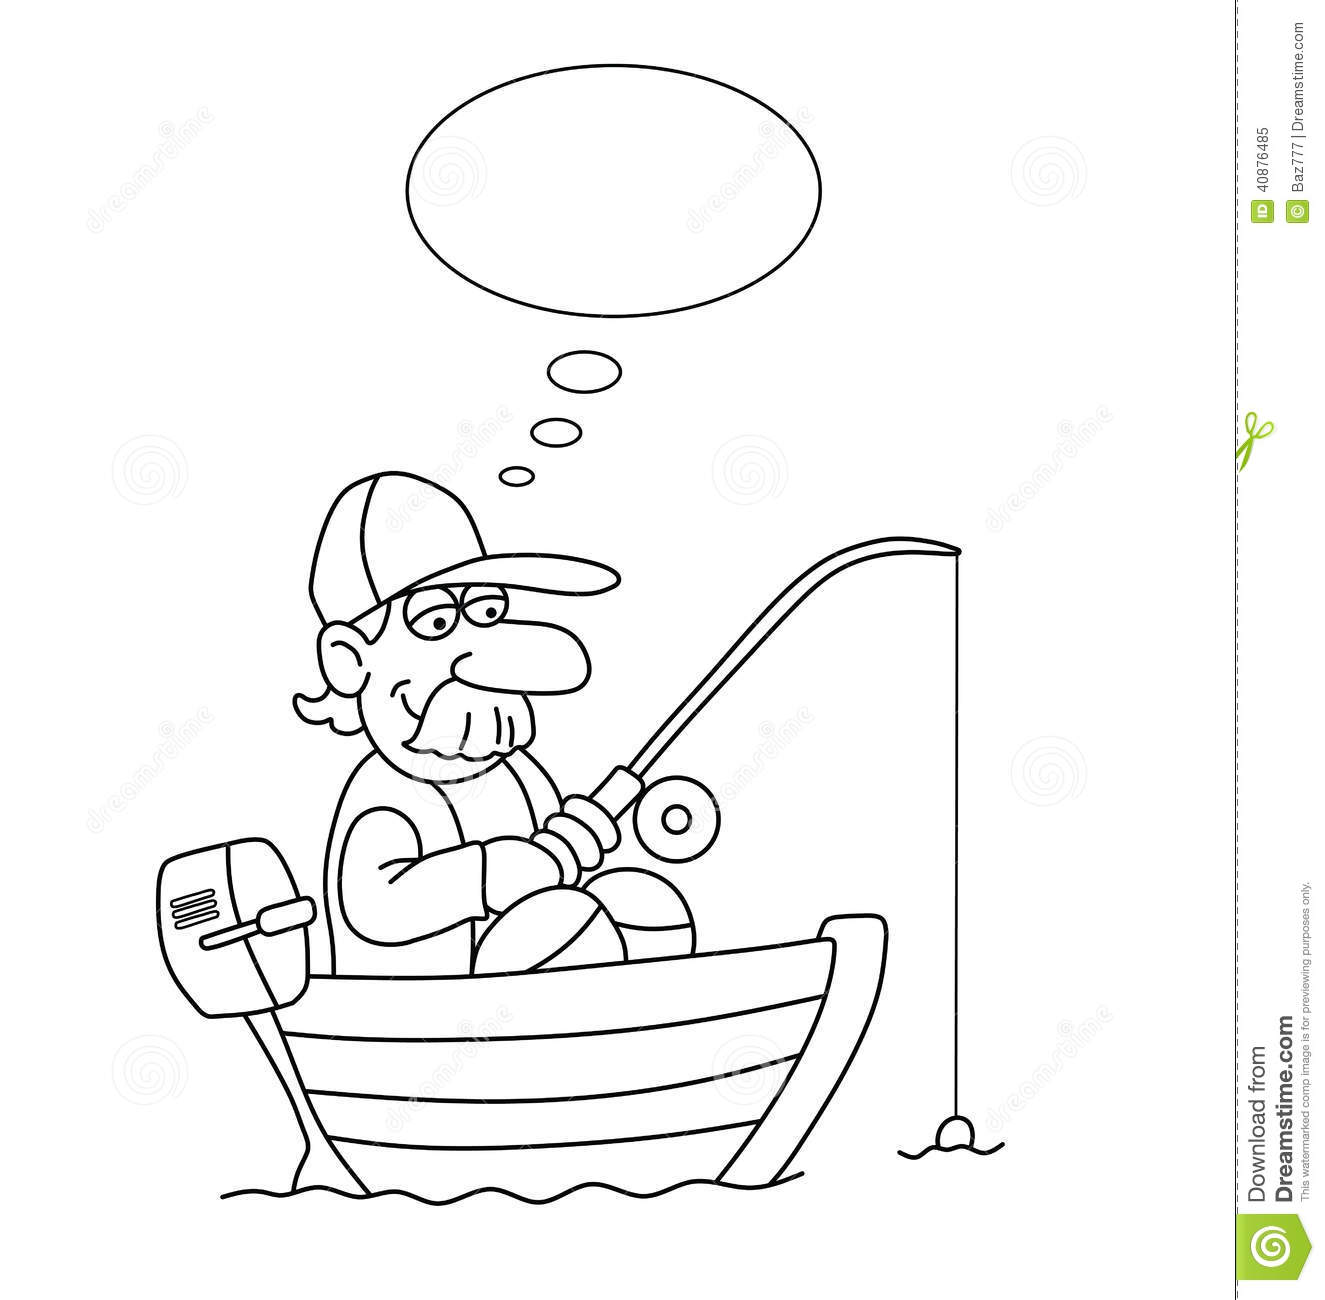 ... in boat with thought bubble for own text isolated on white background